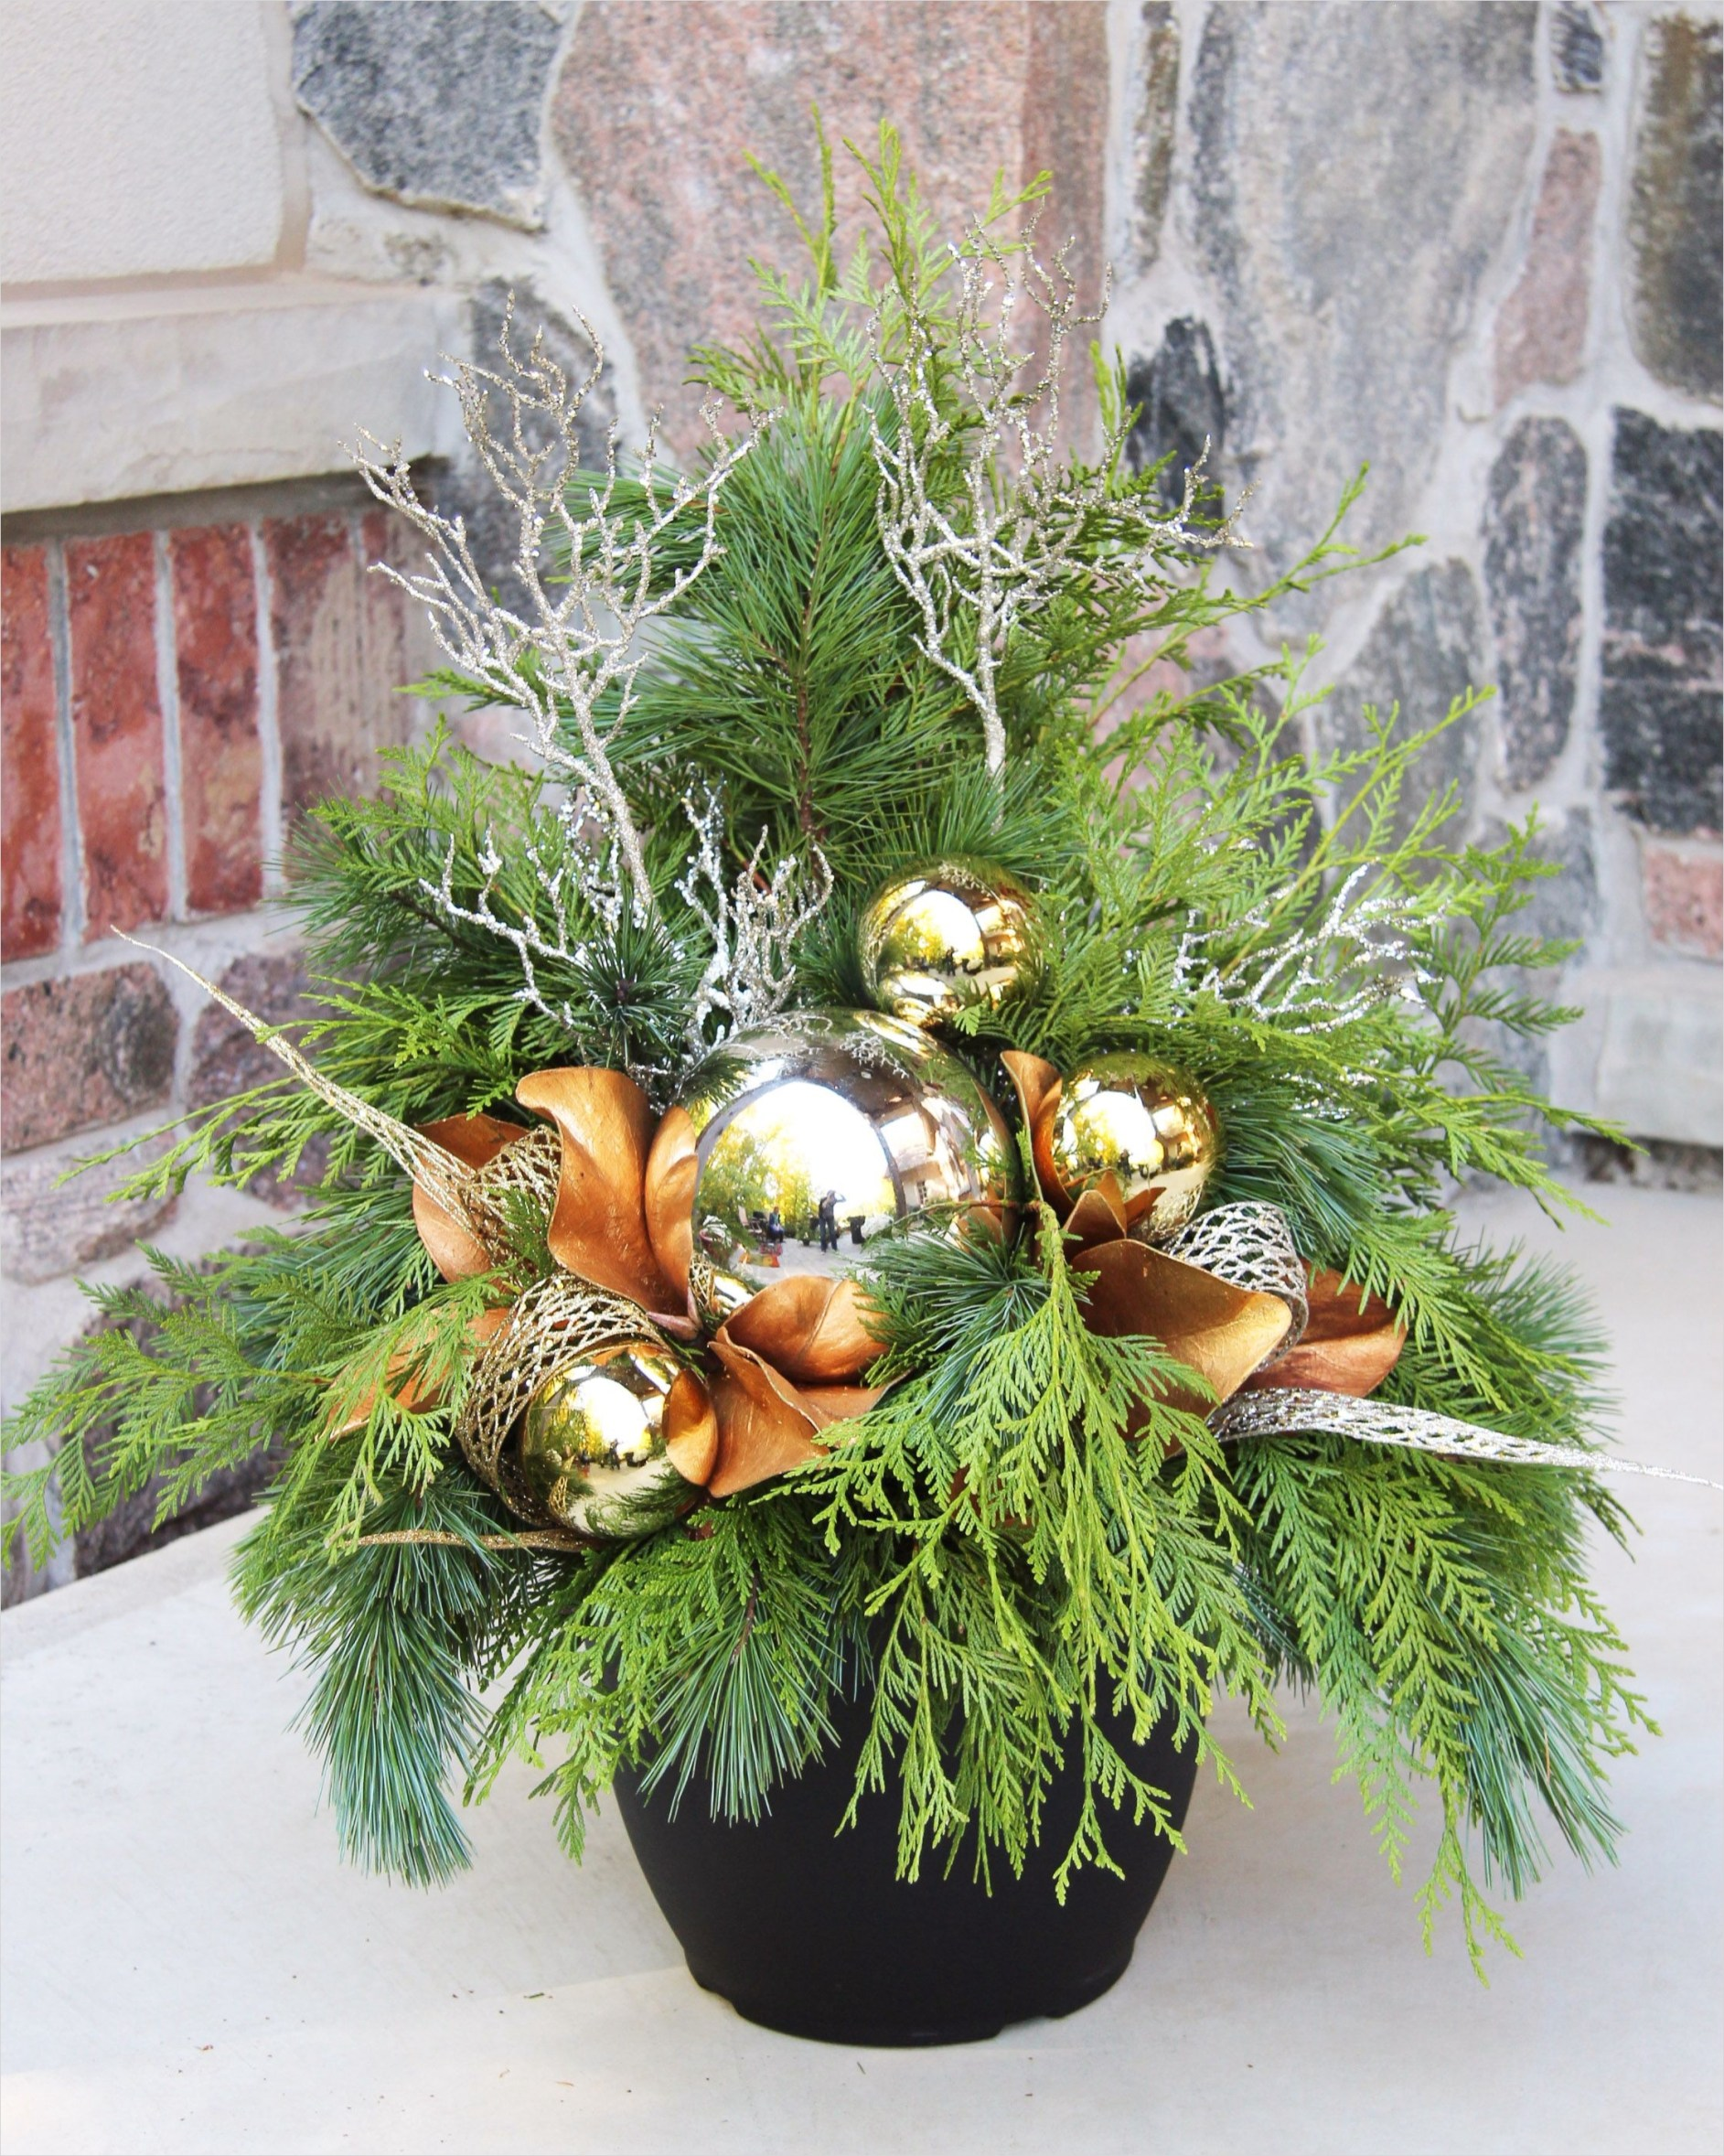 42 Beautiful Christmas Outdoor Pot Decorations Ideas 98 Outdoor Christmas Planter Outdoor Christmas Planters Pinterest 7